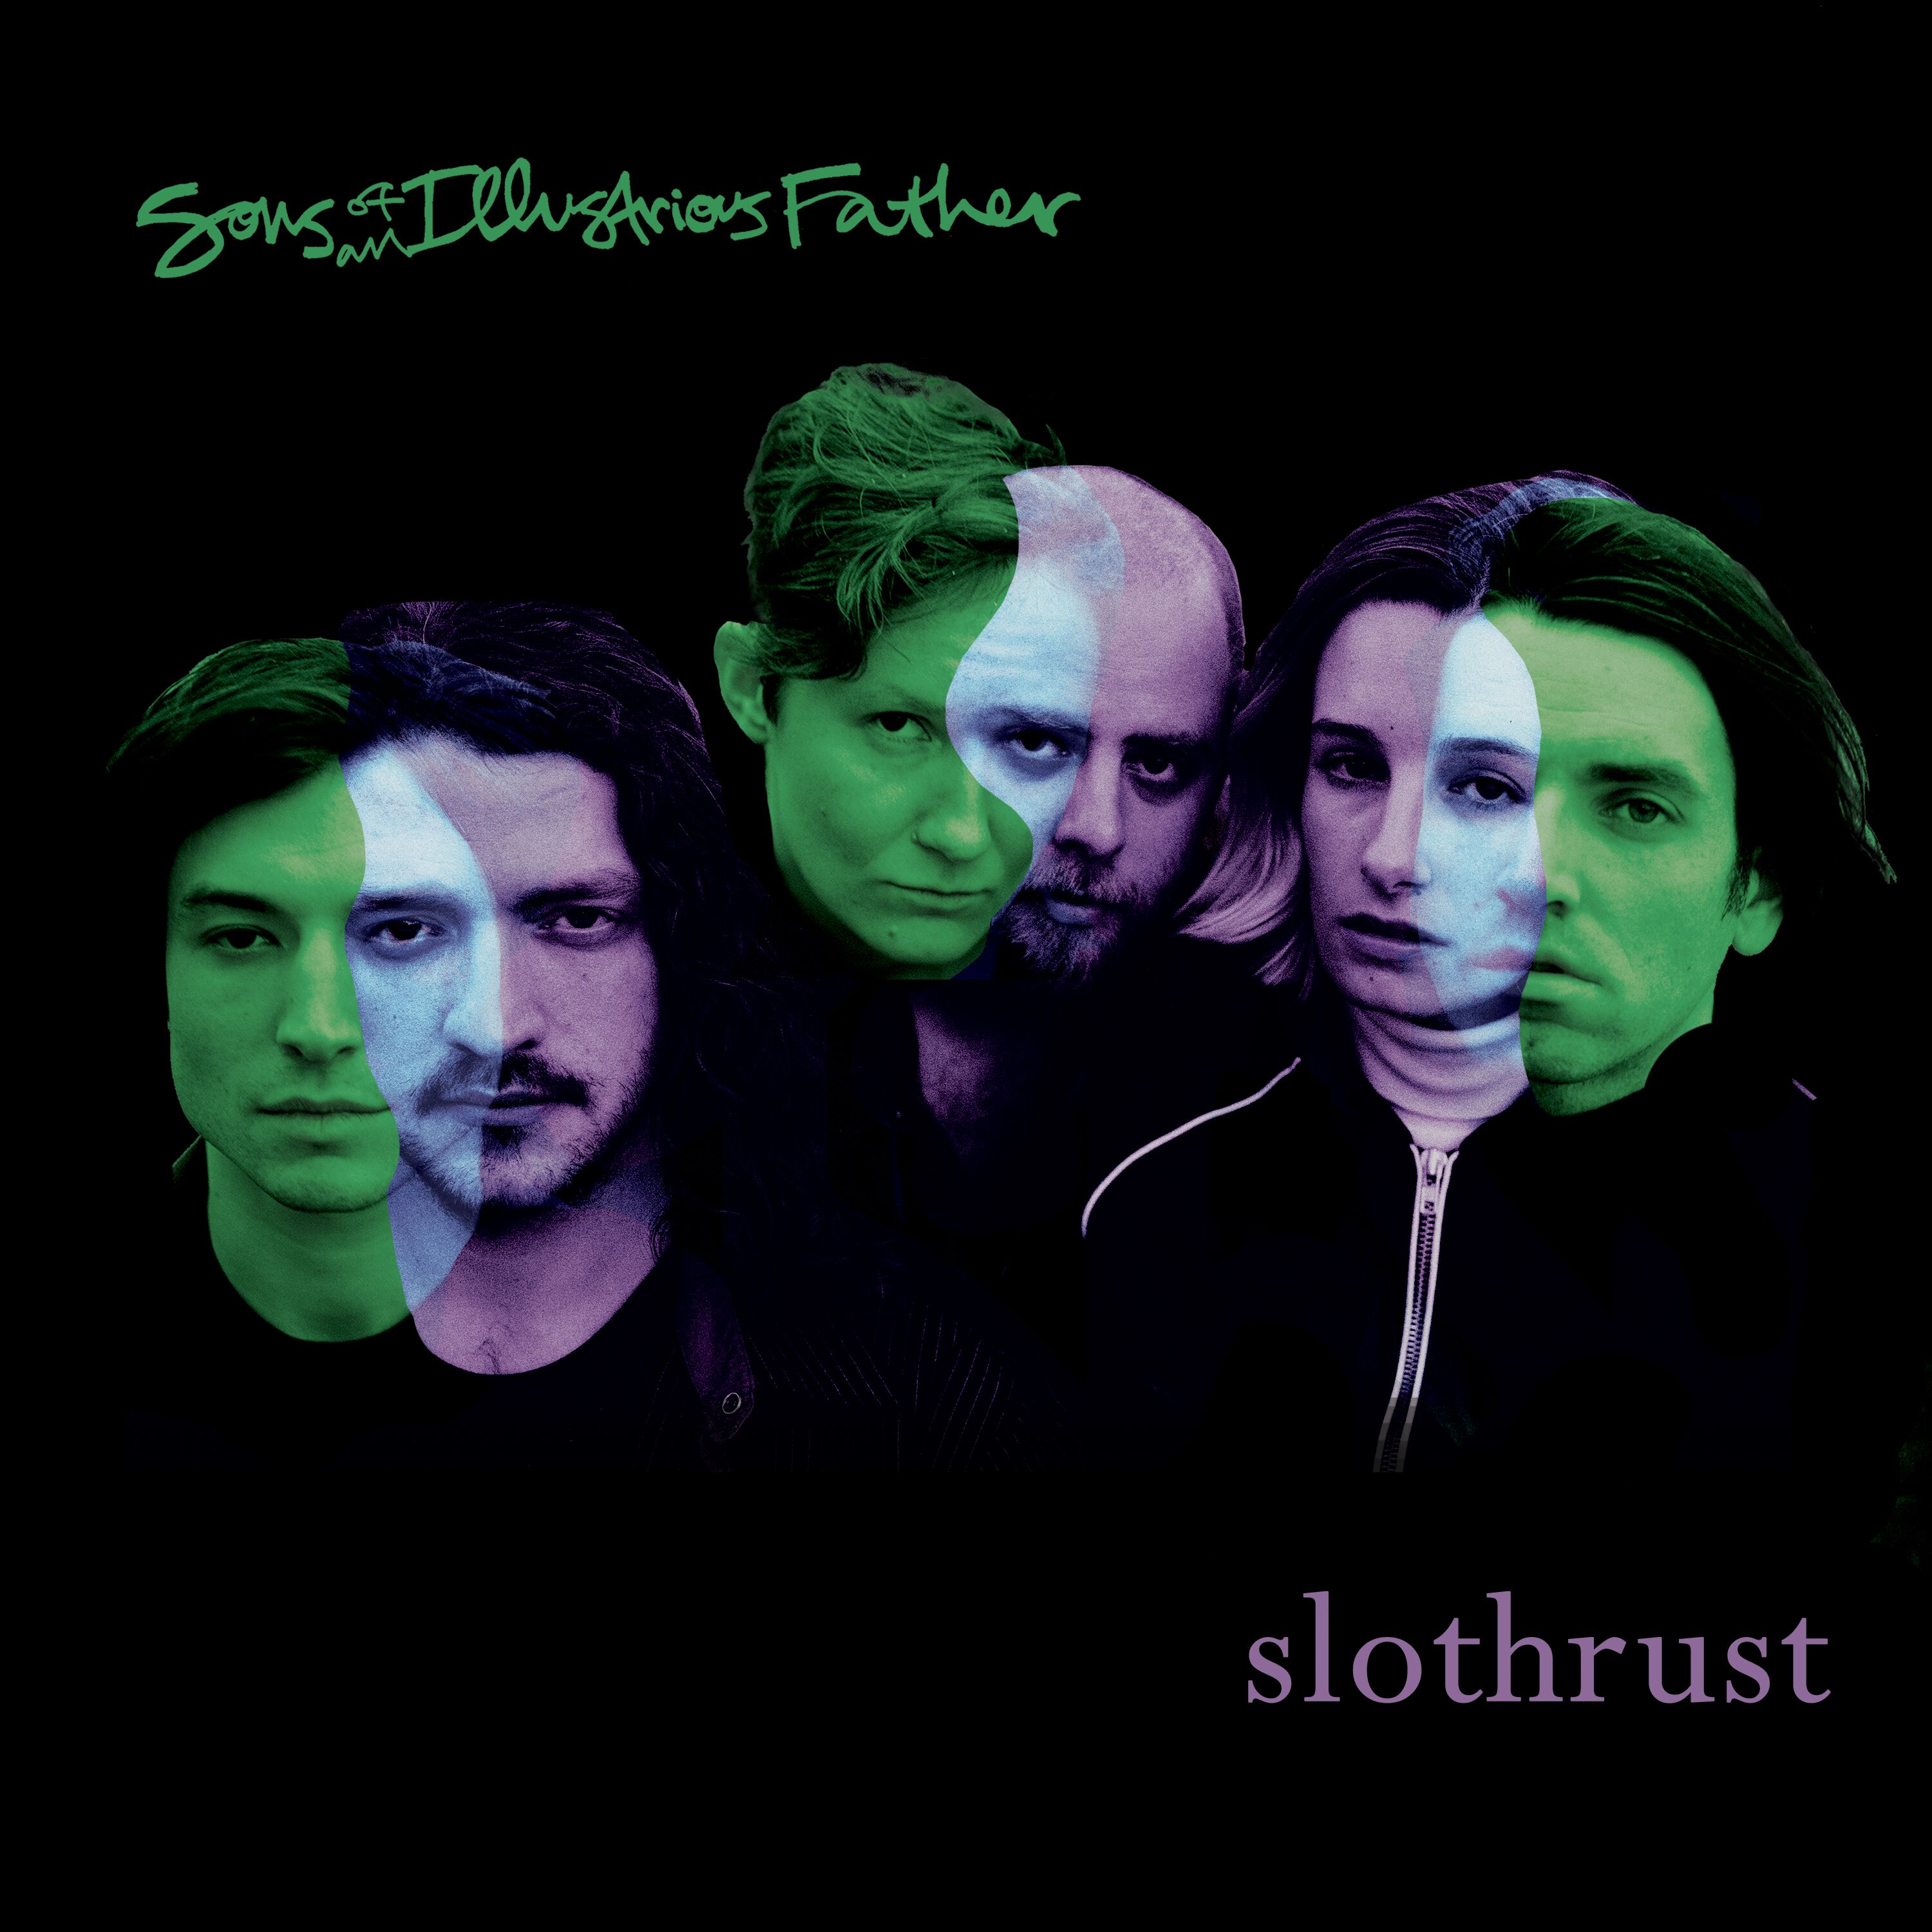 Slothrust b/w Sons of an Illustrious Father - U.S. Gay / Horseshoe Crab (Digital Download)